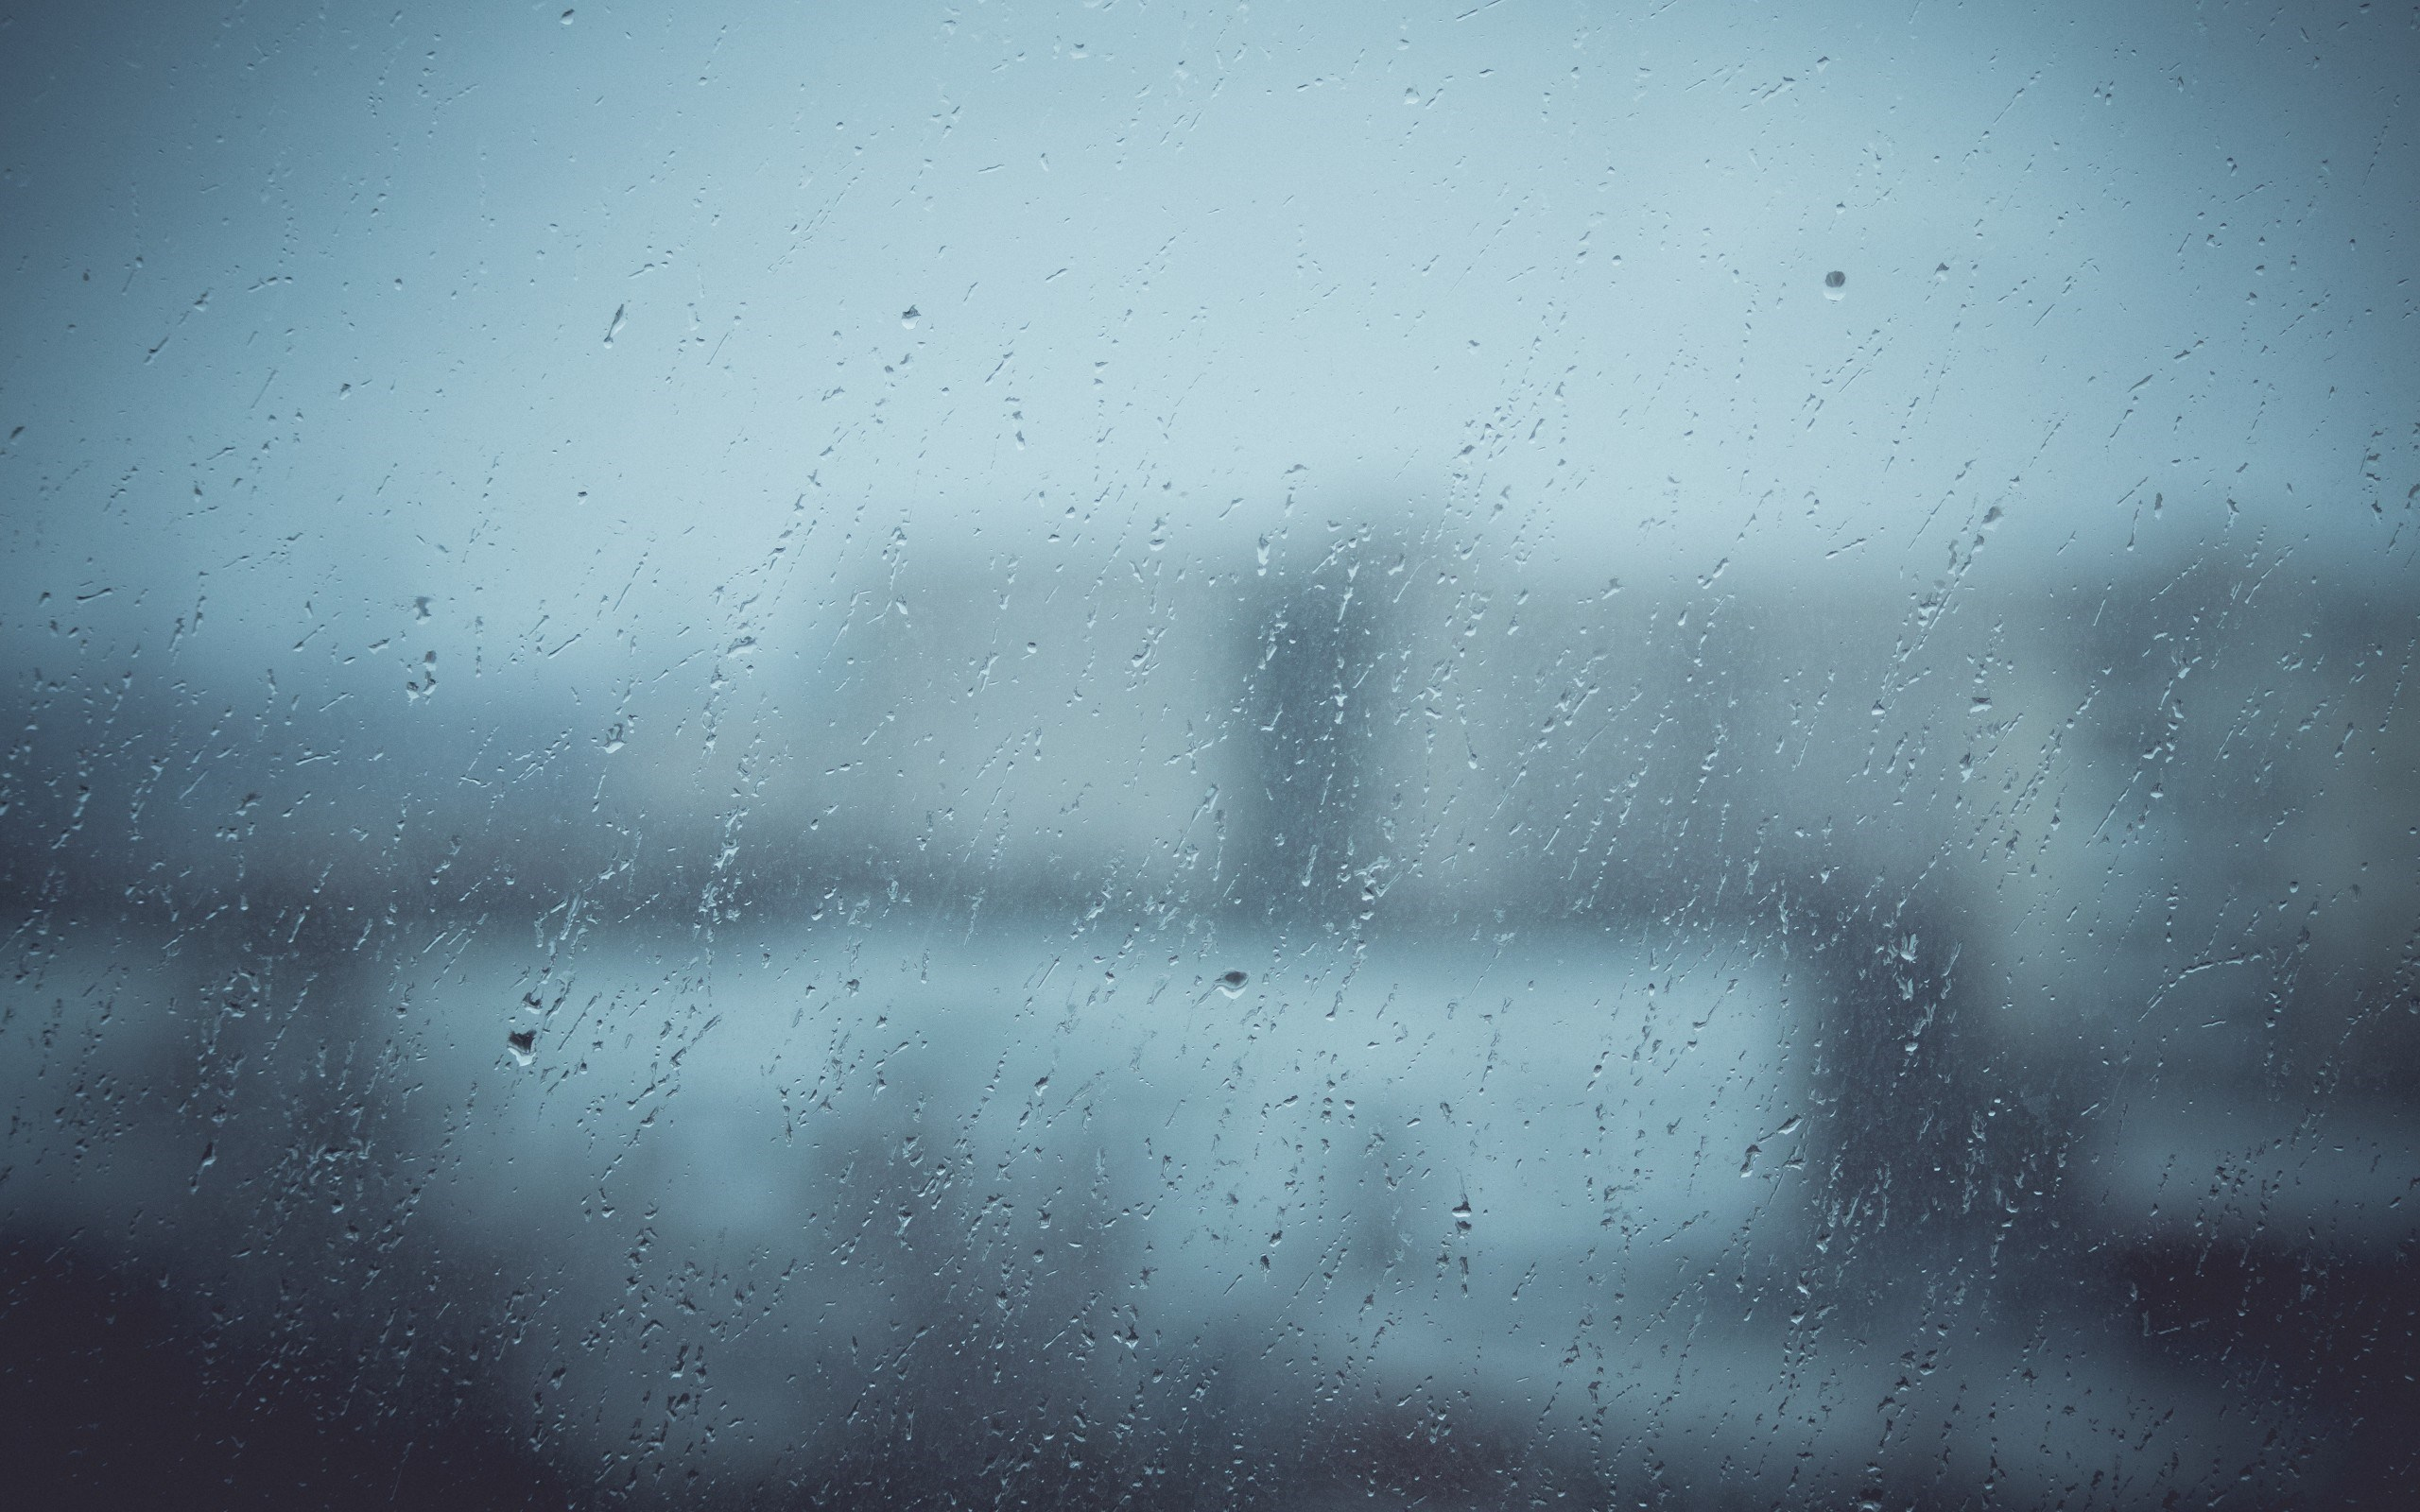 rain wallpapers hd